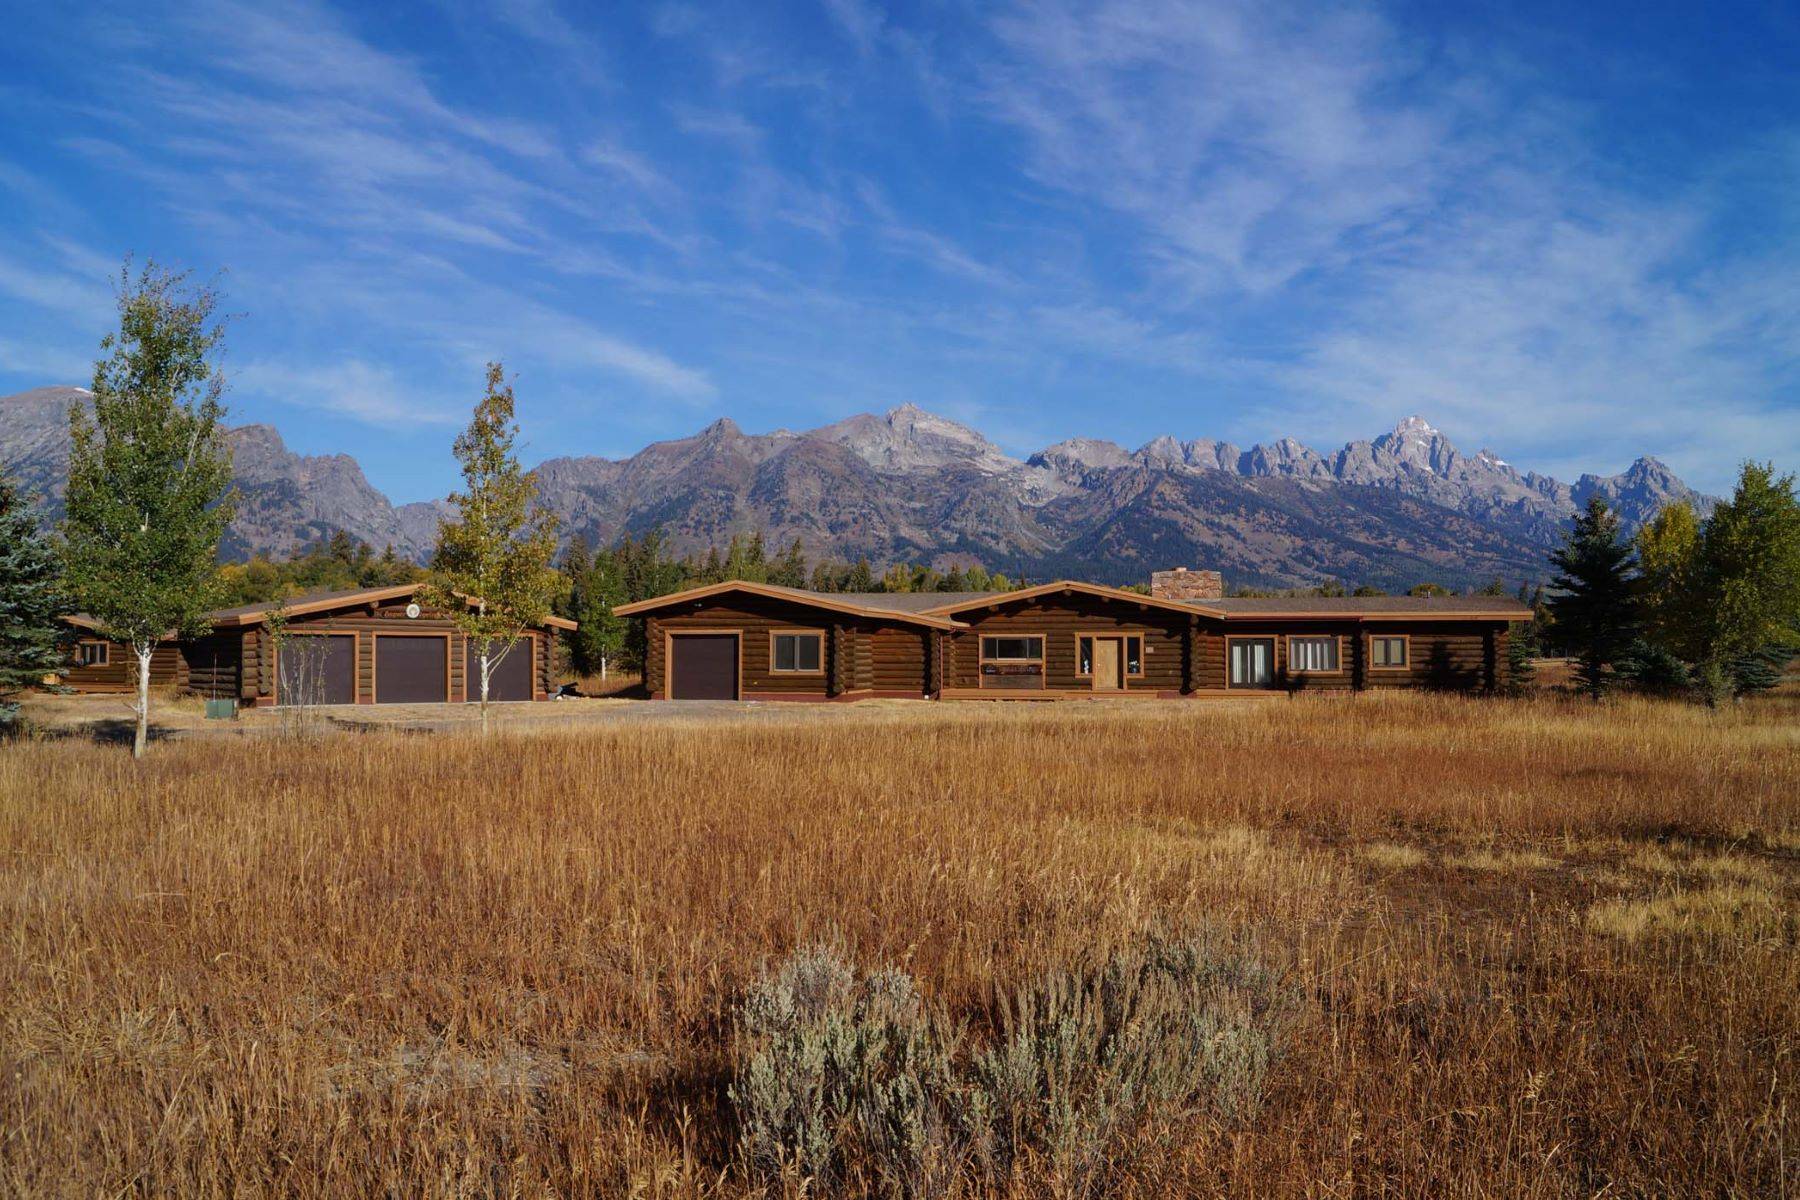 Single Family Home for Sale at Log home with stunning Teton Range views 855 E Glacier Road Jackson, Wyoming 83001 United States